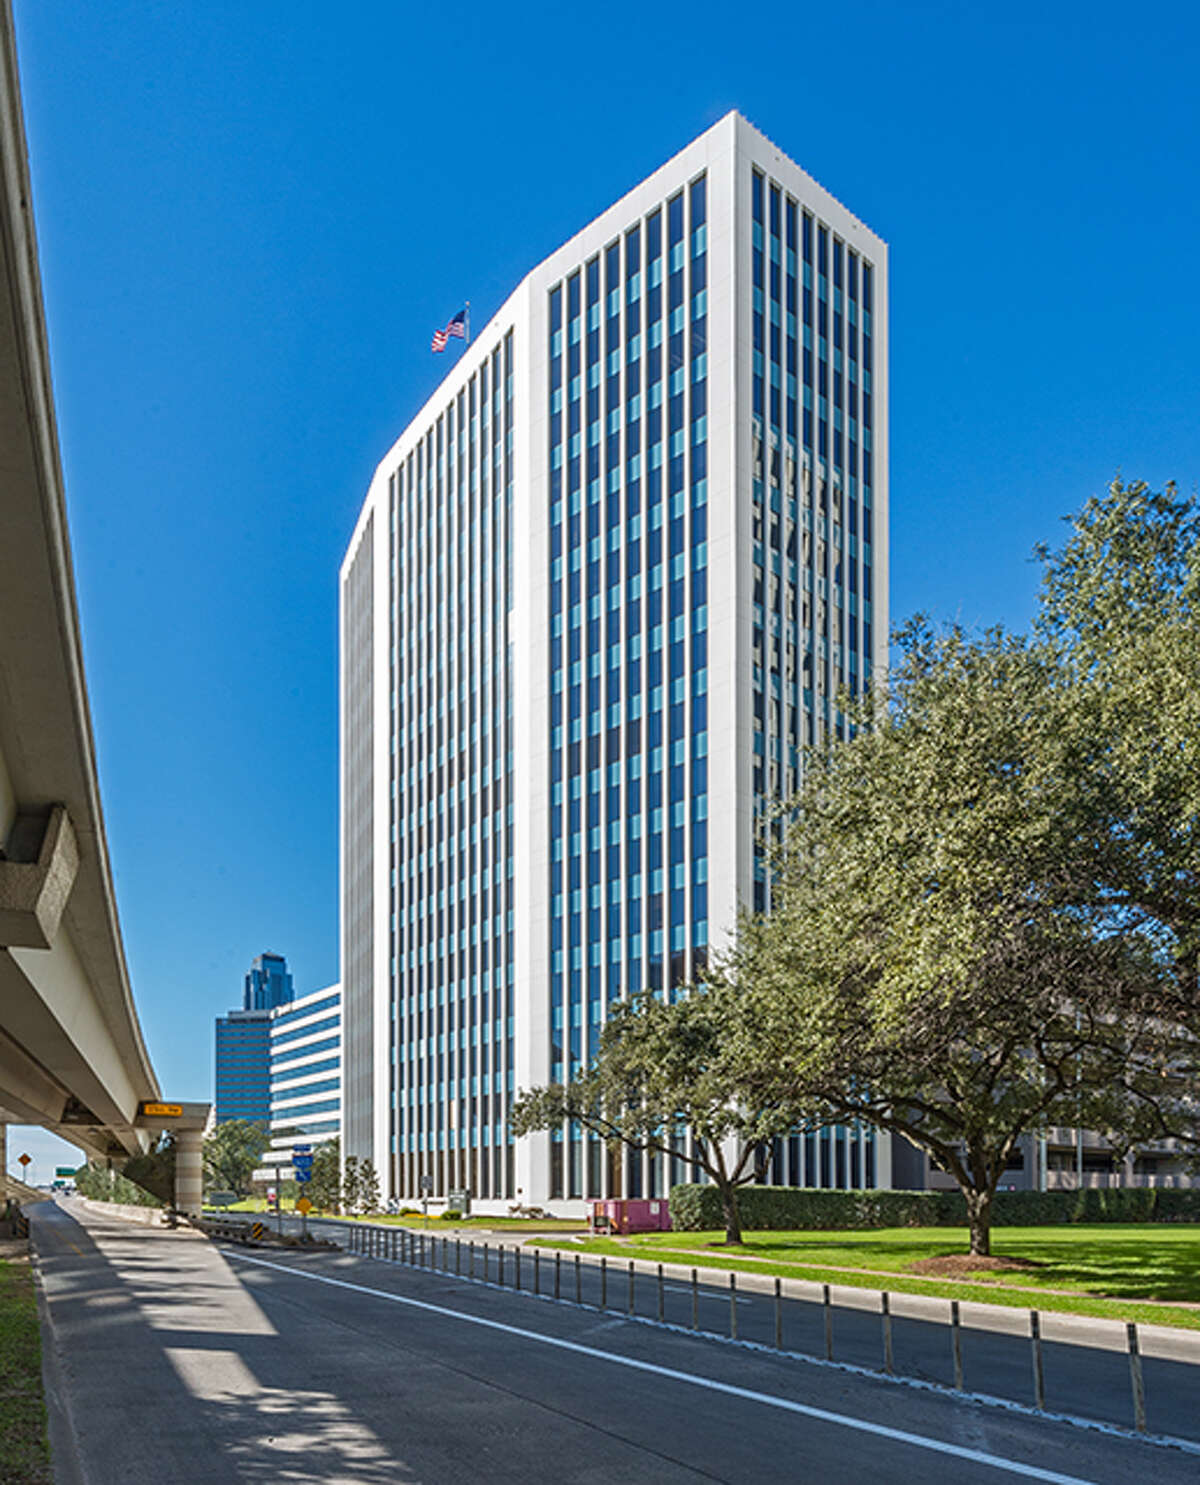 Elite Street Capital has purchased 2100 West Loop South, a 16-story building in the Galleria area.